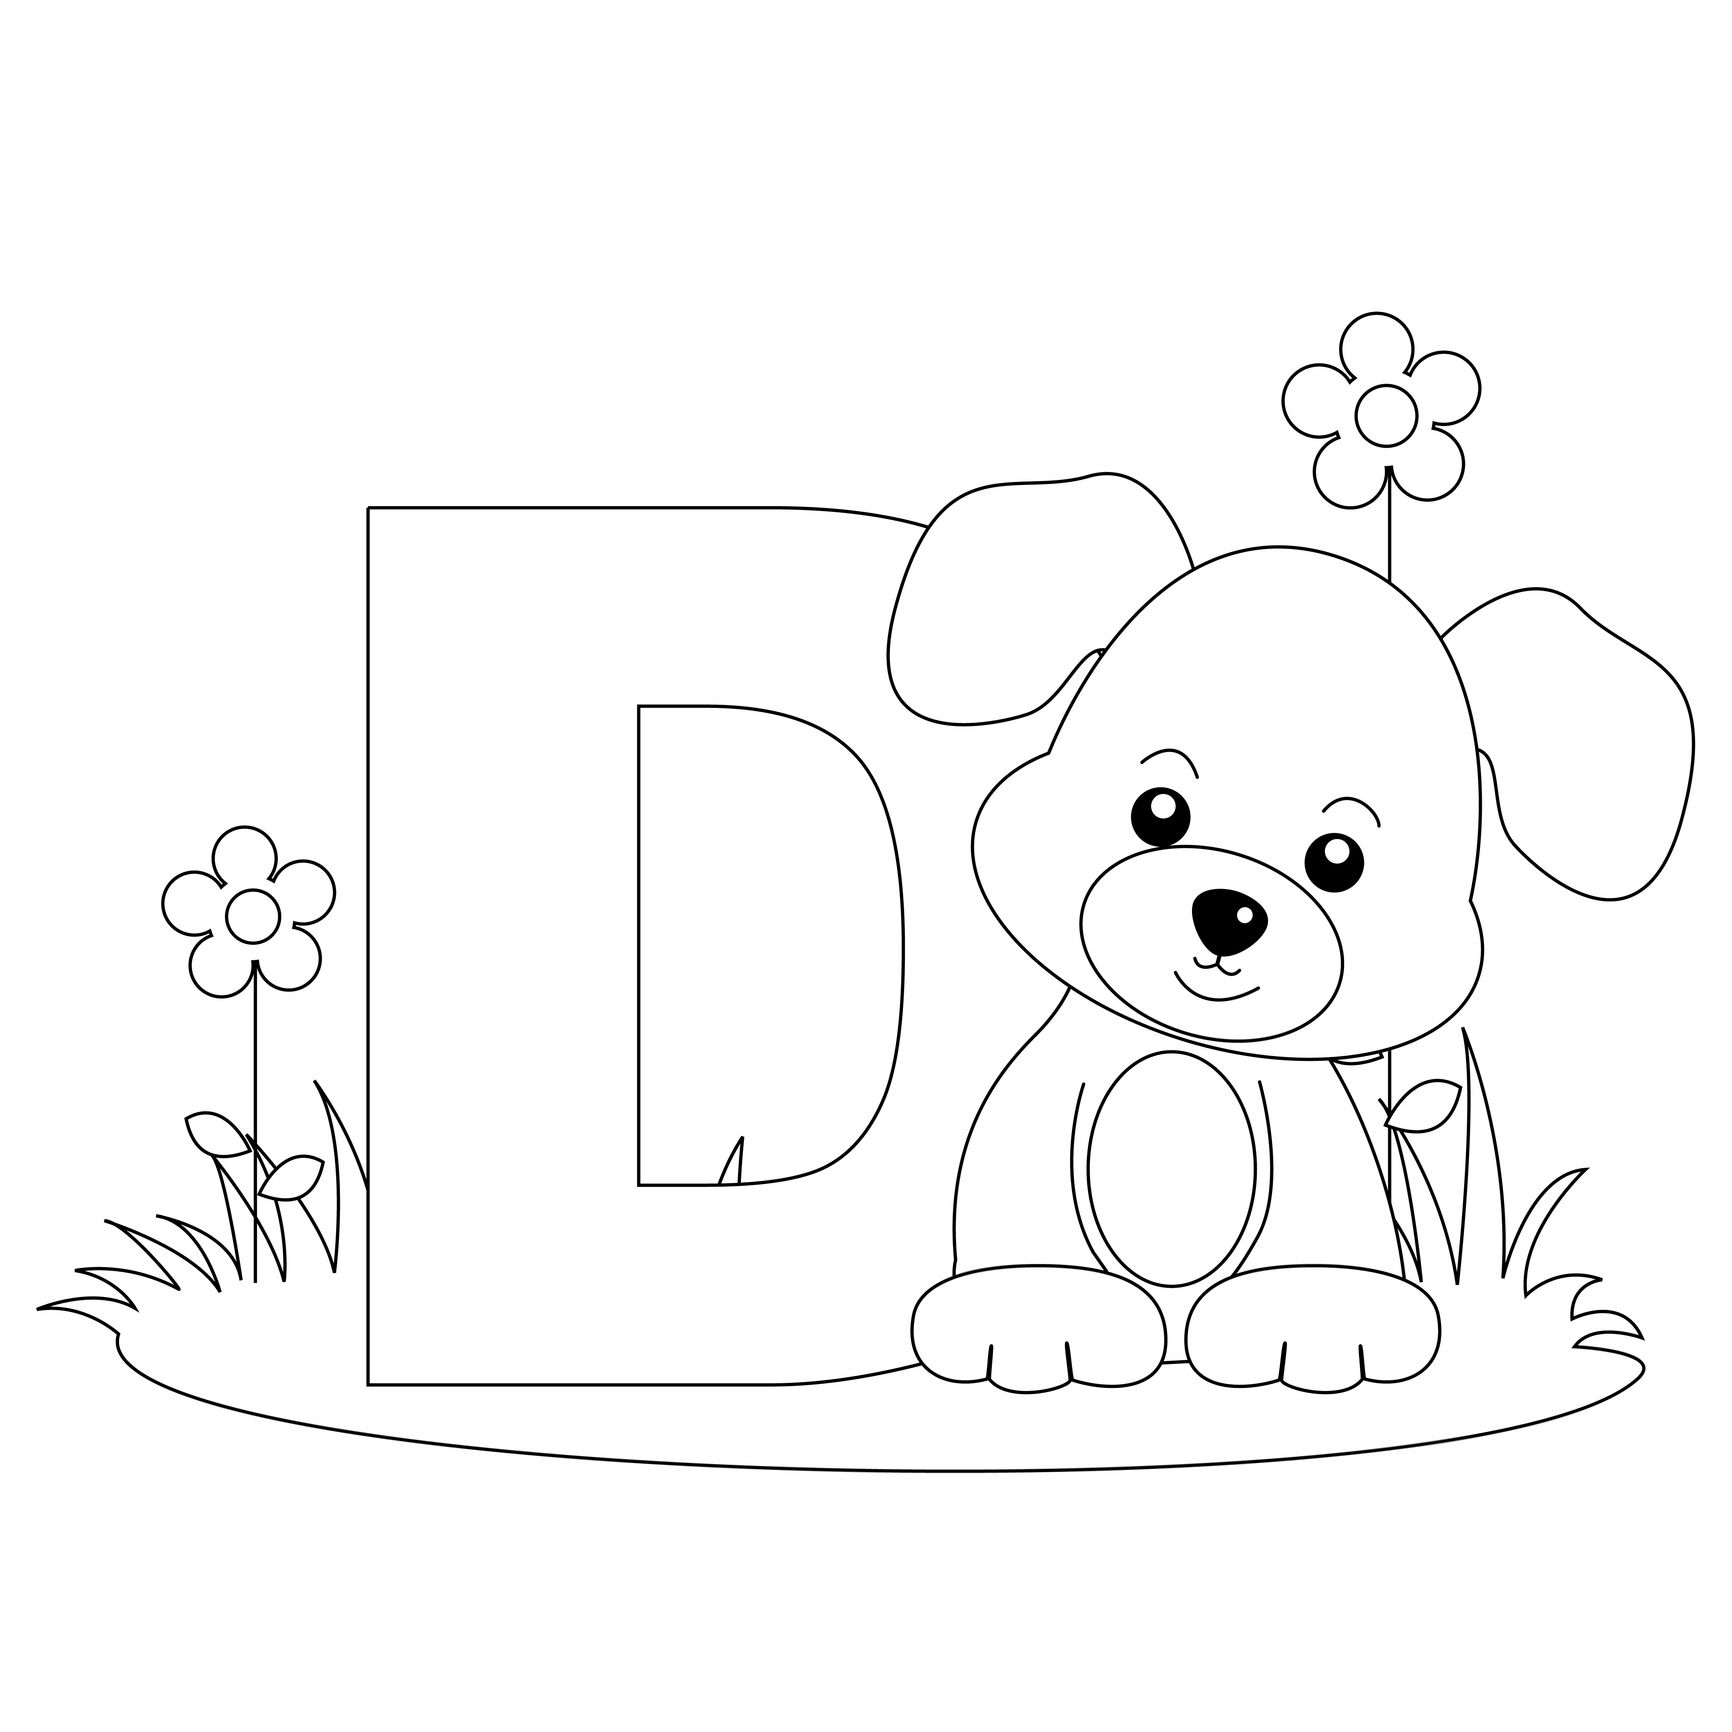 1732x1732 Animal Alphabet Letter D Is For Dog! Here's A Simple Alphabet